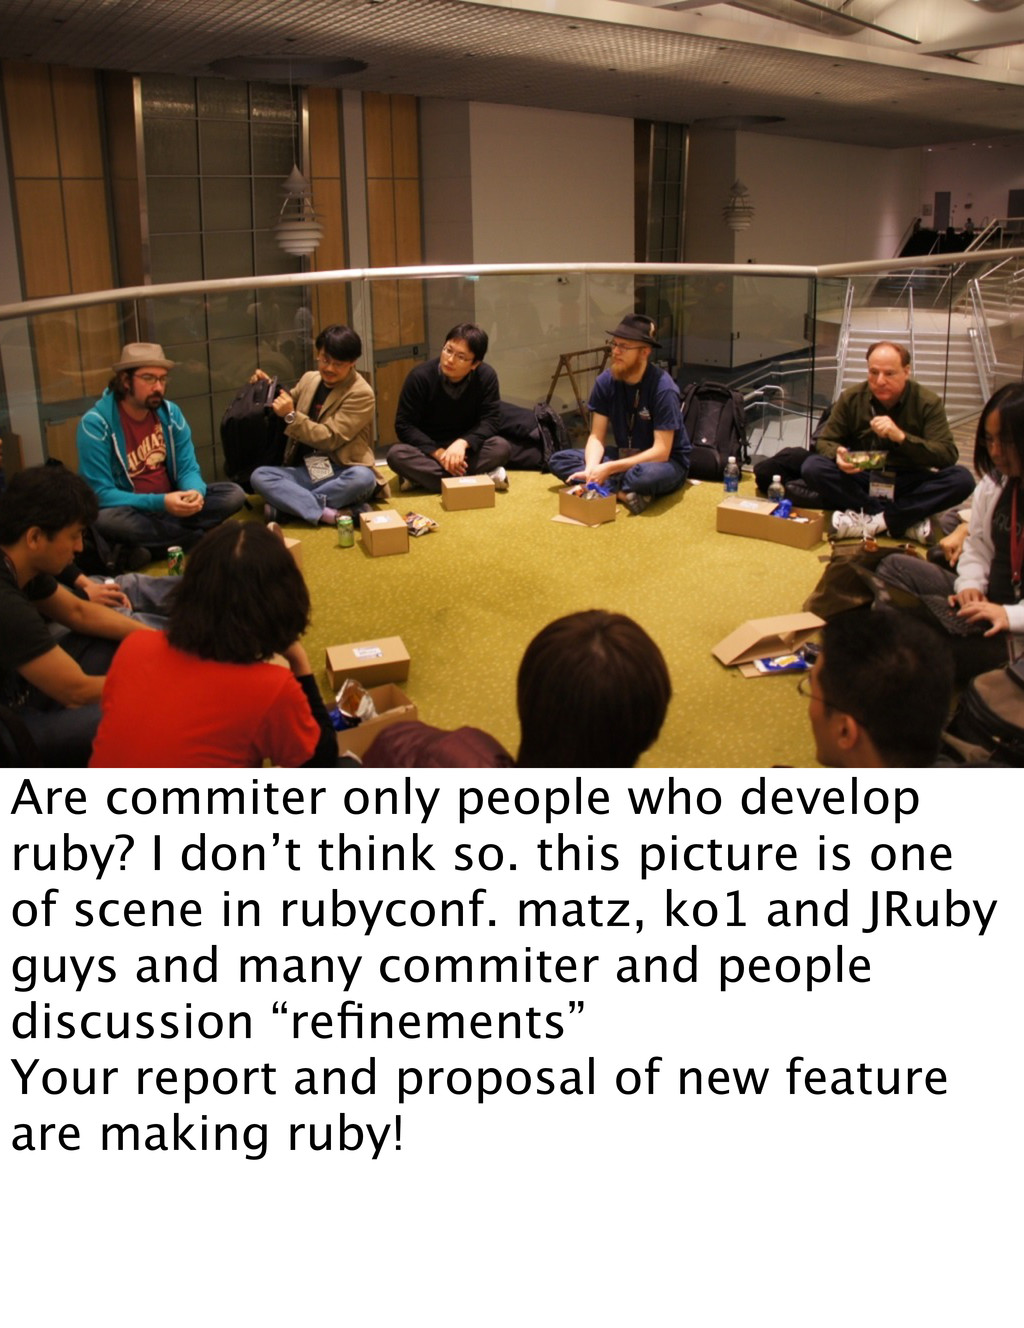 Are commiter only people who develop ruby? I do...